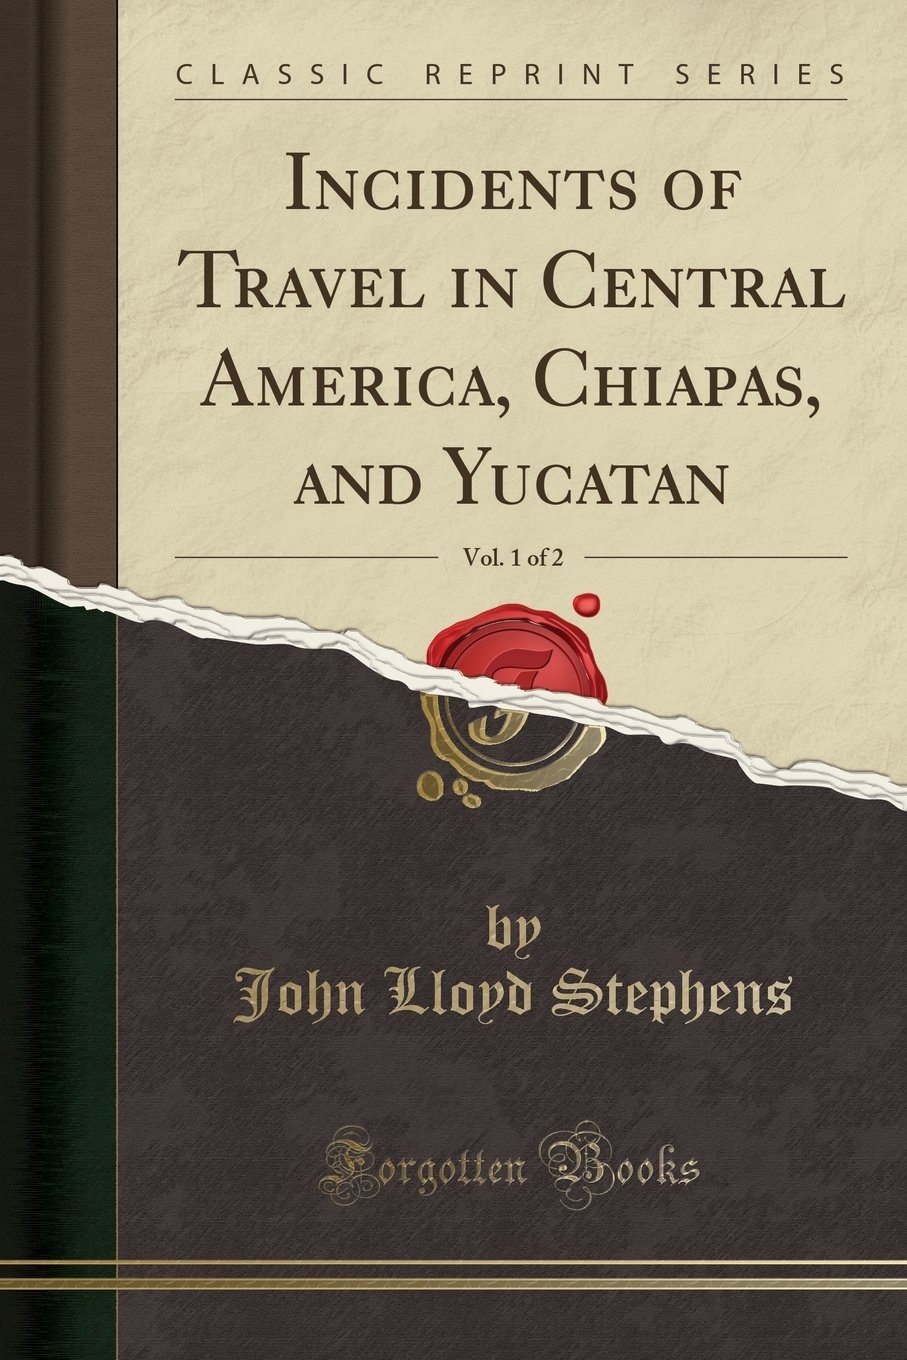 Incidents of Travel in Central America, Chiapas, and Yucatan, Vol. 1 of 2 (Classic Reprint)